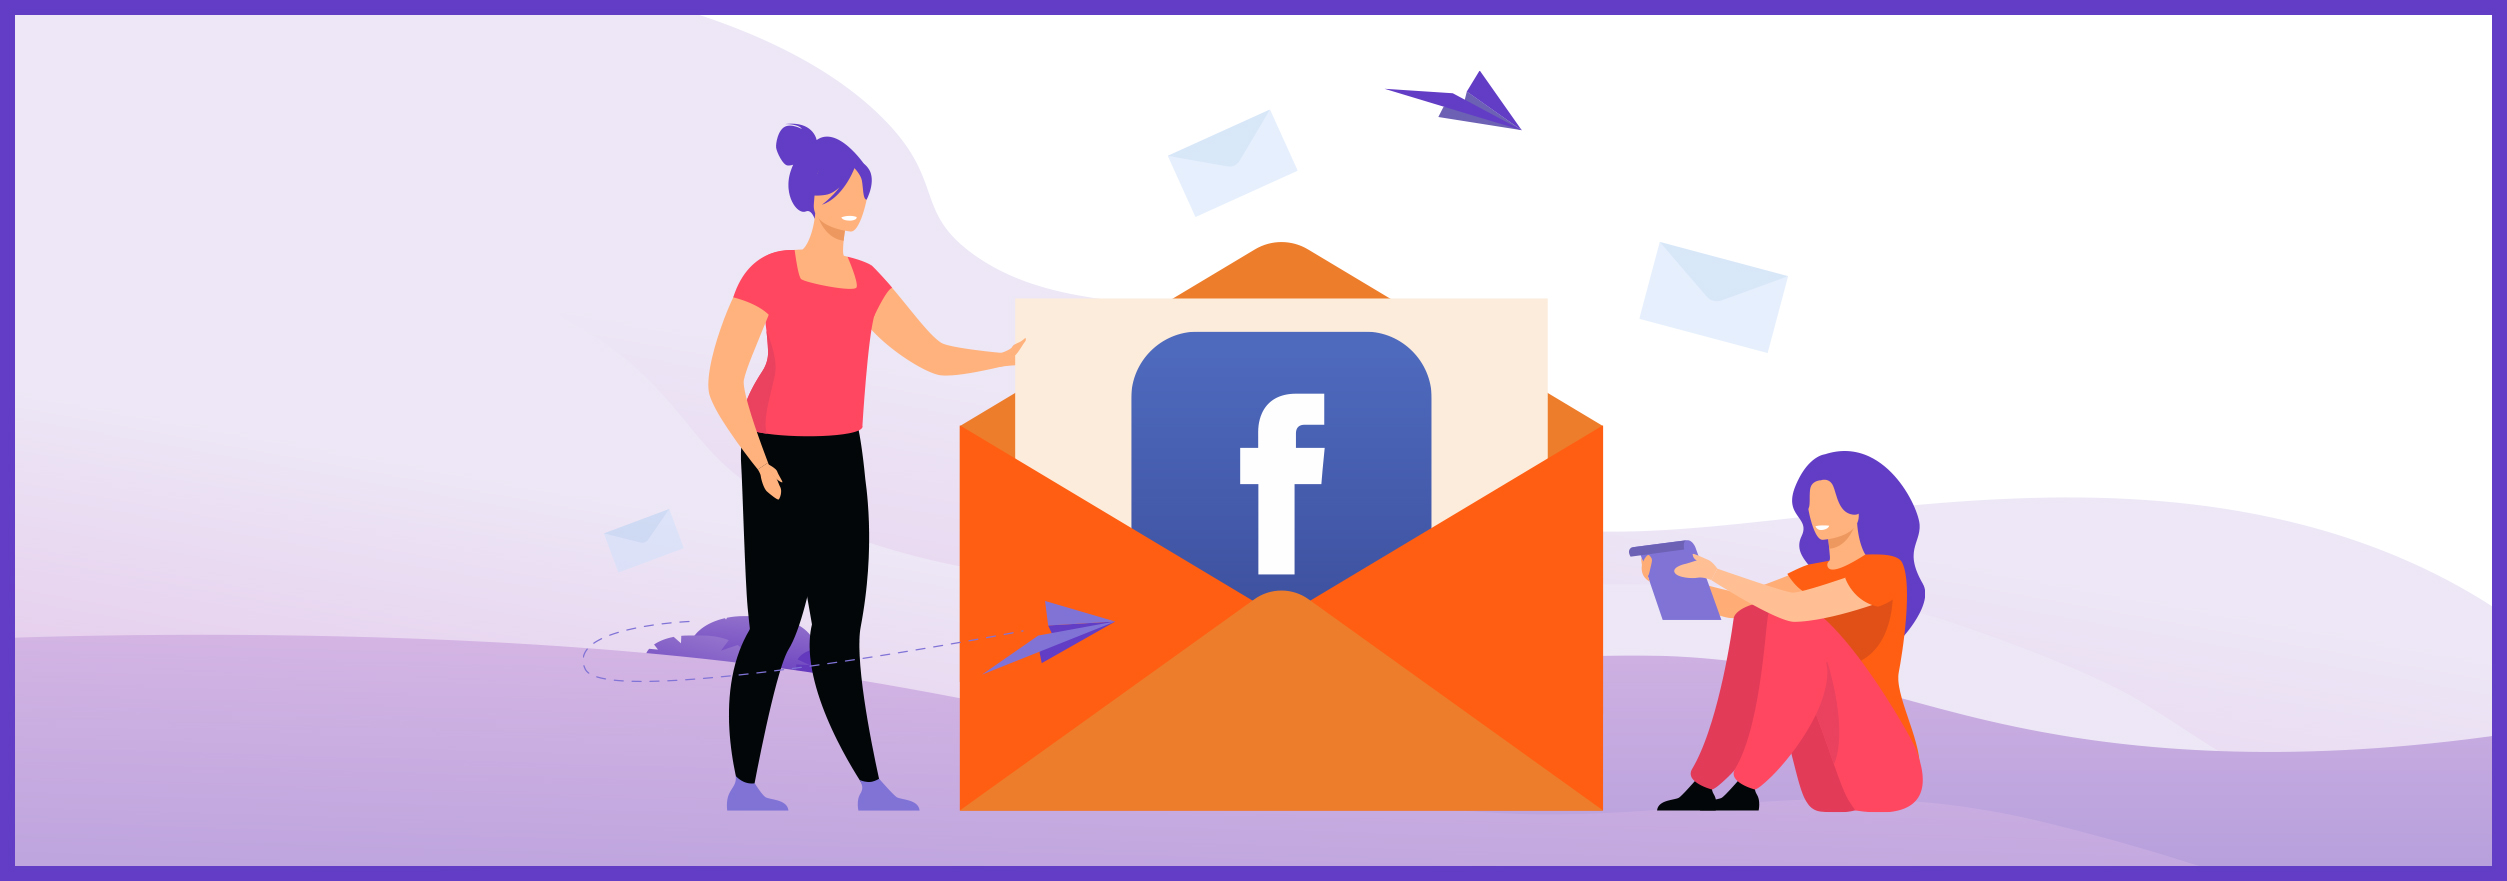 Here's How We Drove Newsletter Growth Using Facebook Lead Ads